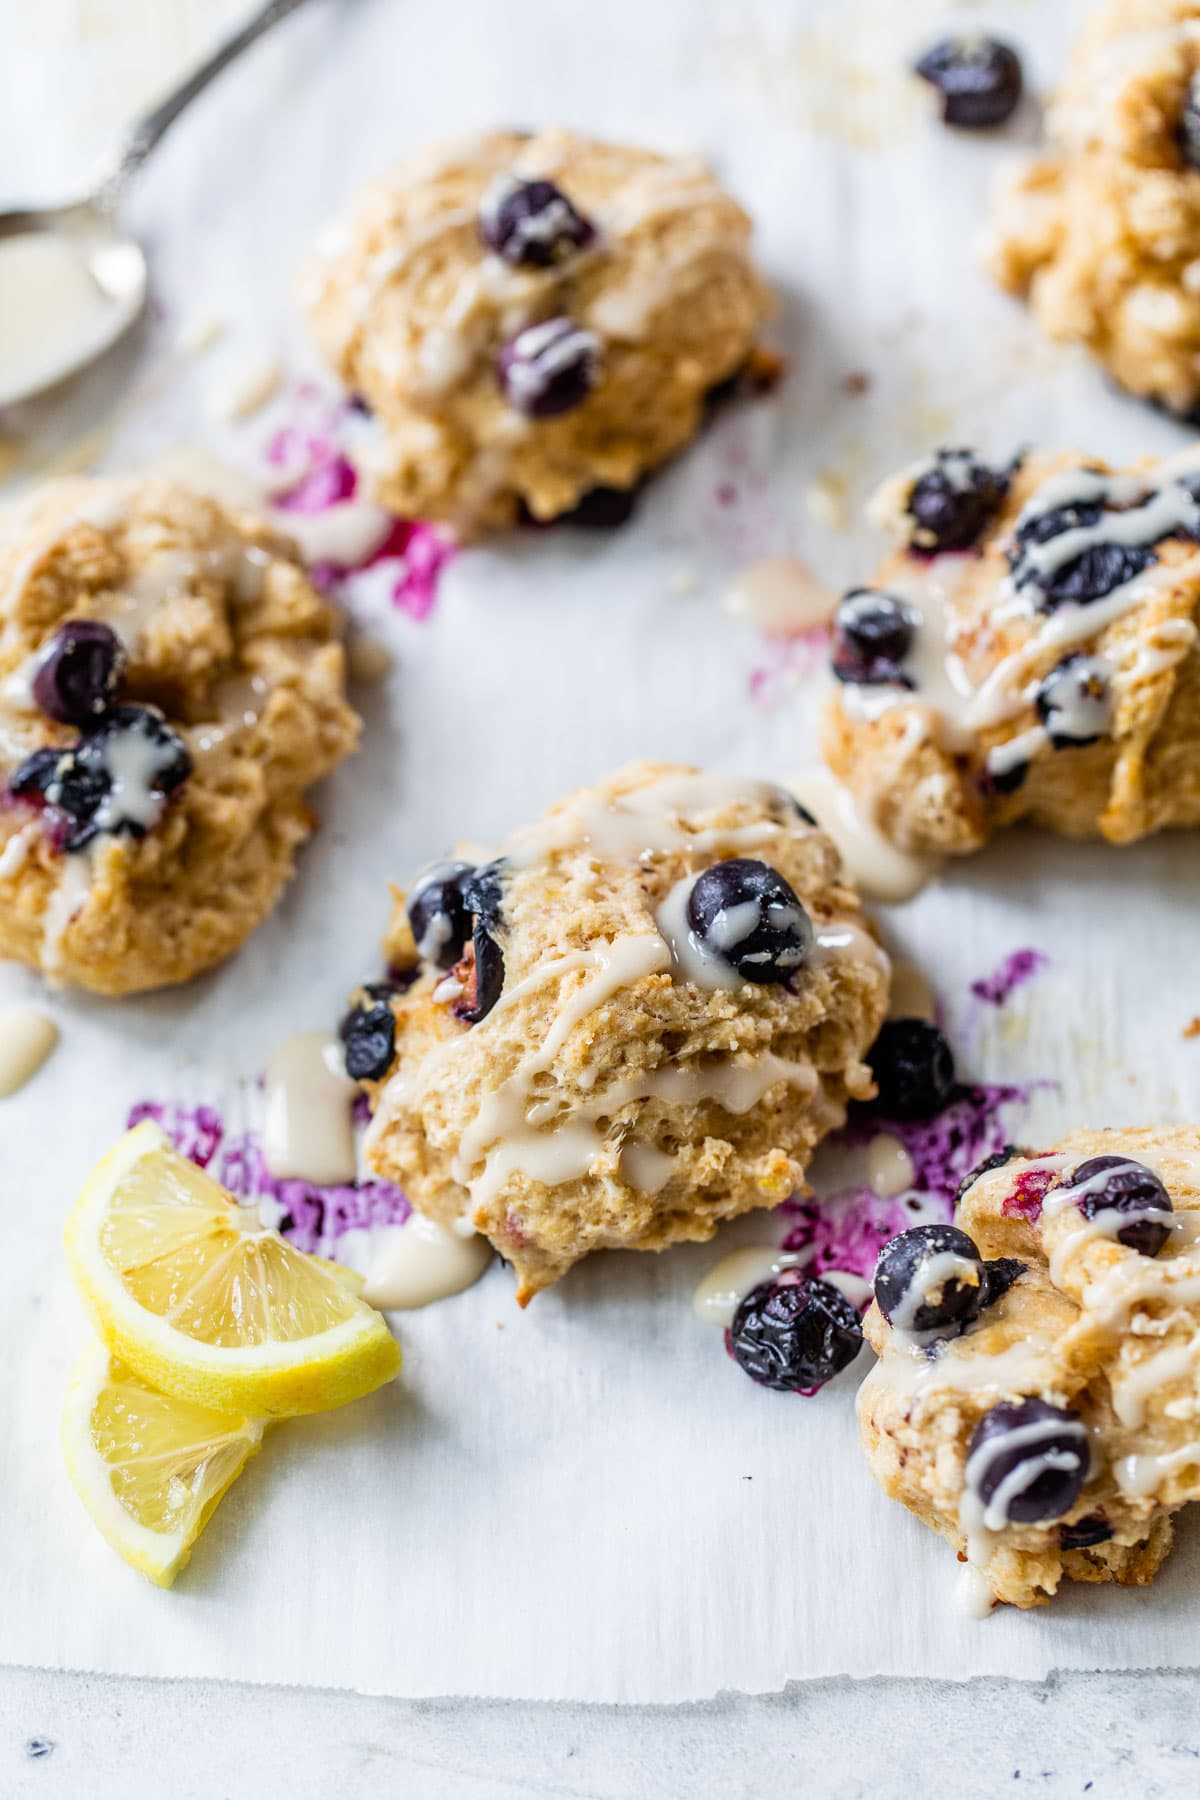 Fluffy healthy lemon blueberry biscuits with glaze on top